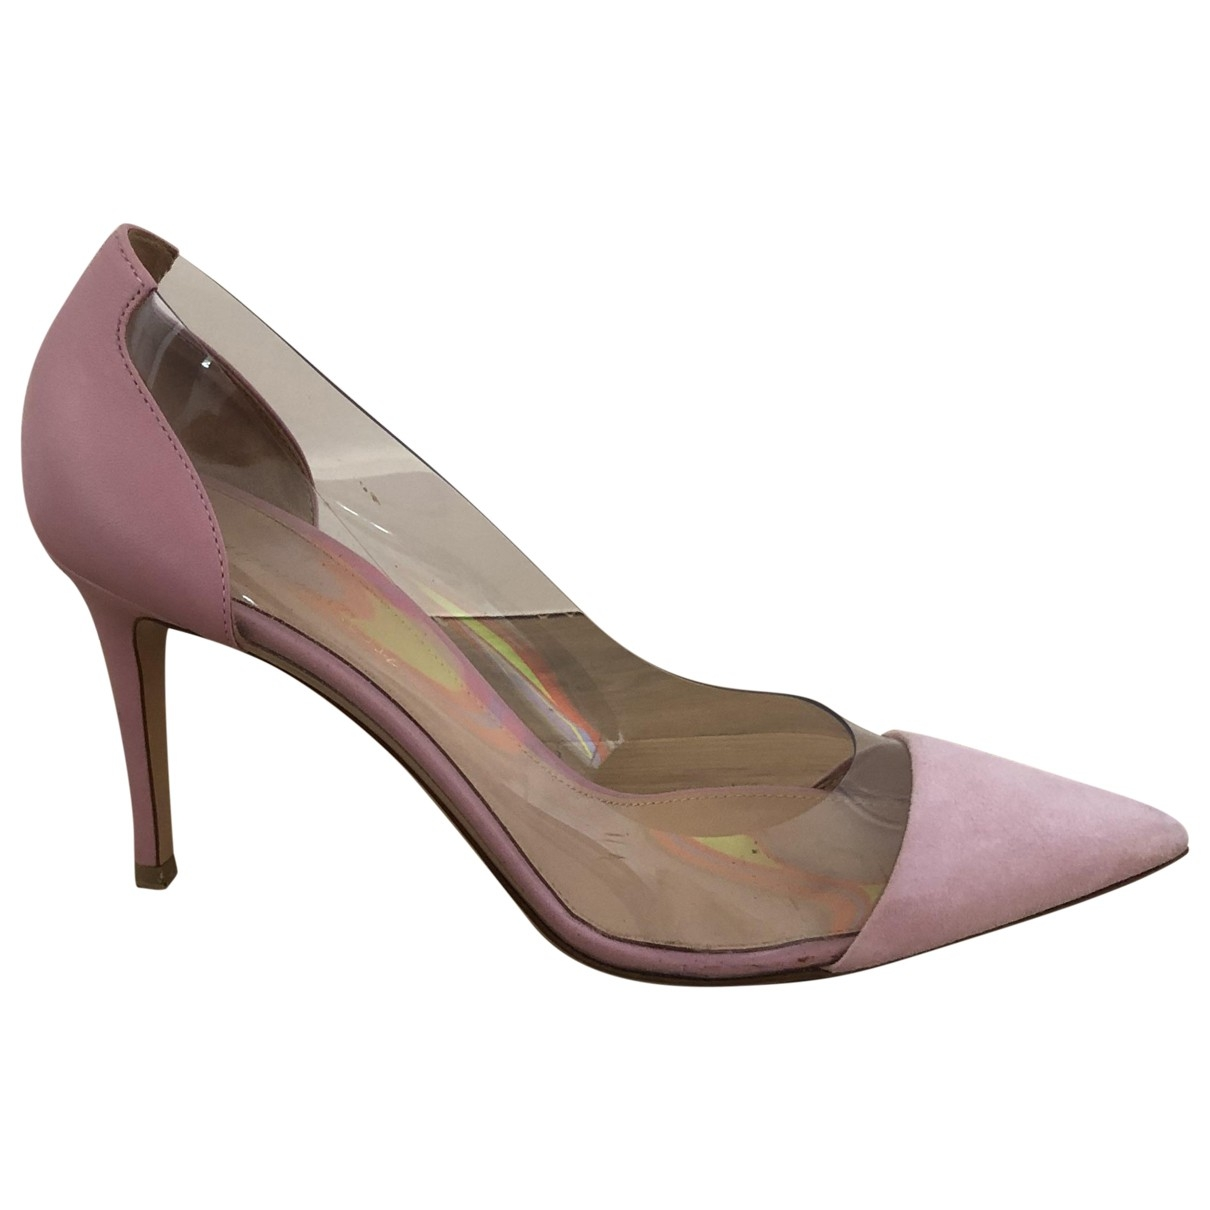 Gianvito Rossi Plexi Pink Heels for Women 40 EU